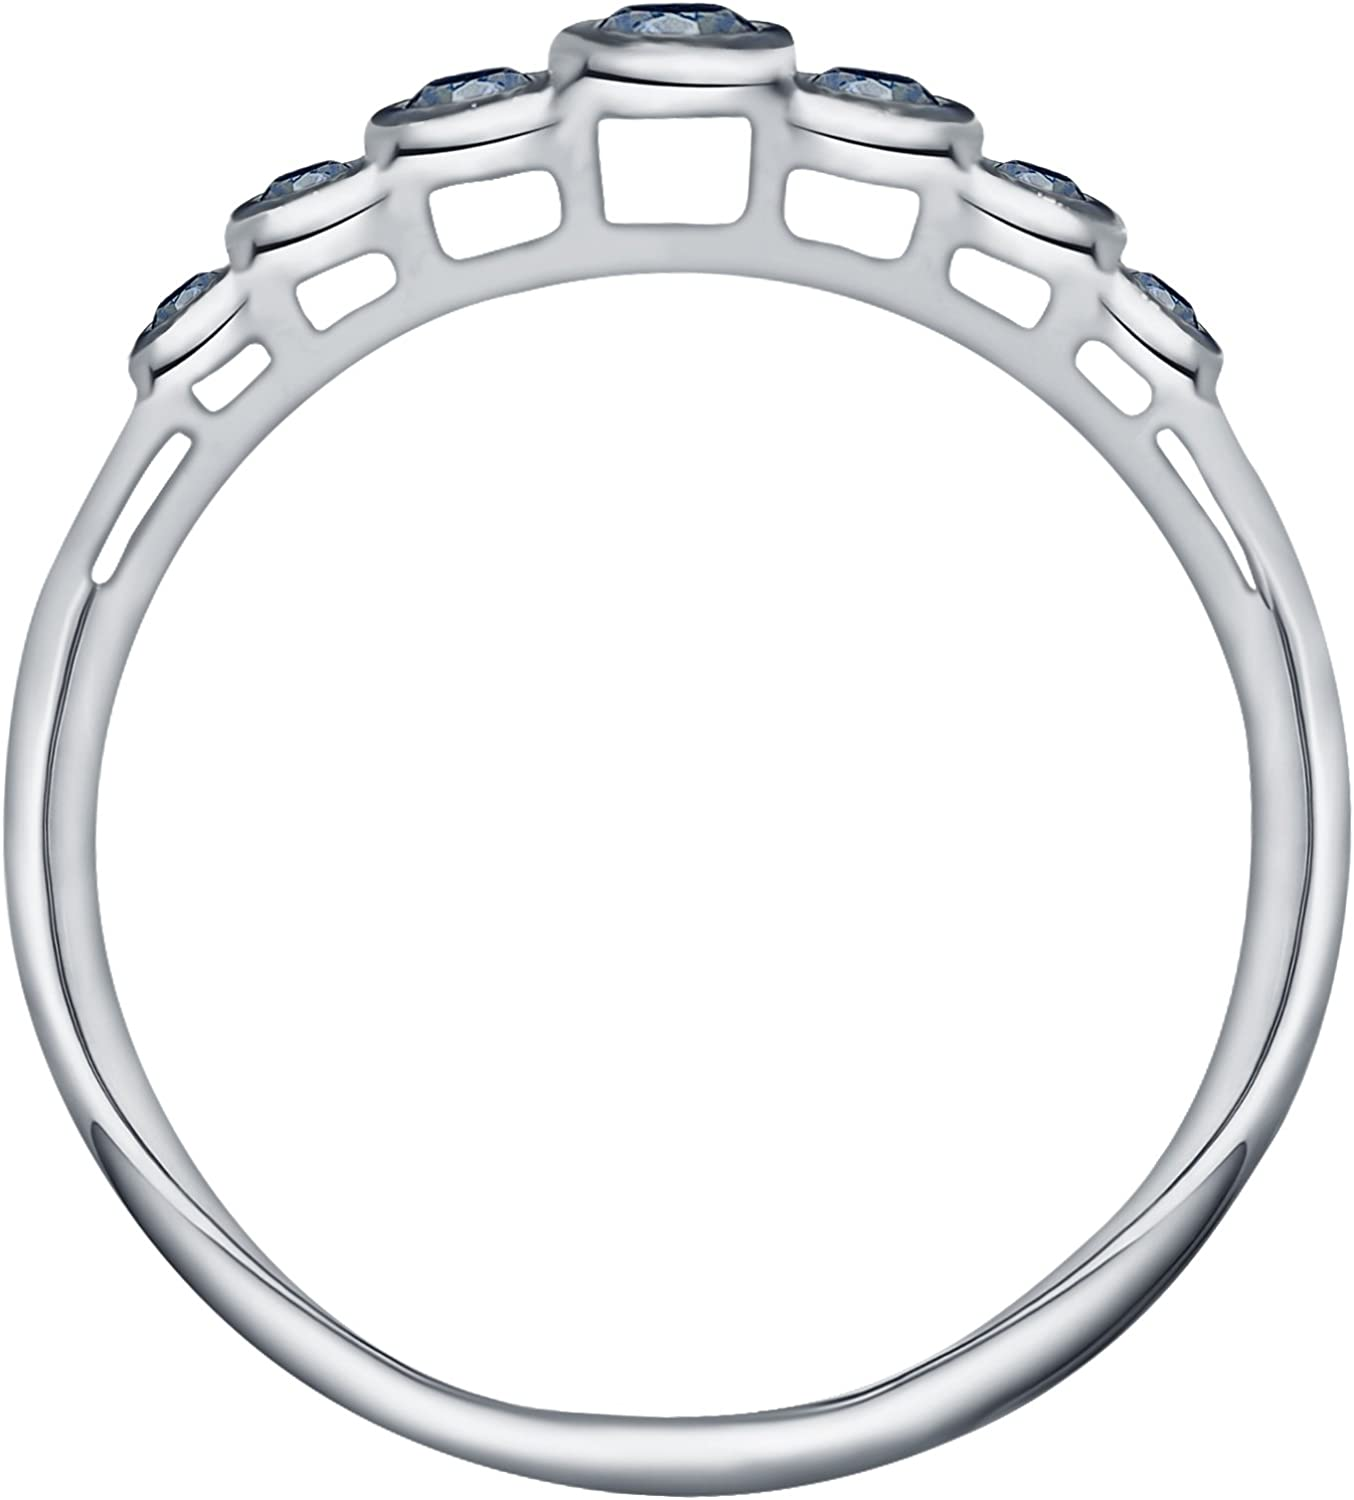 Prism Jewel 0.23Ct Round Cut Blue Diamond Bezel Set 7 Stone Ring Crafted In 925 Silver